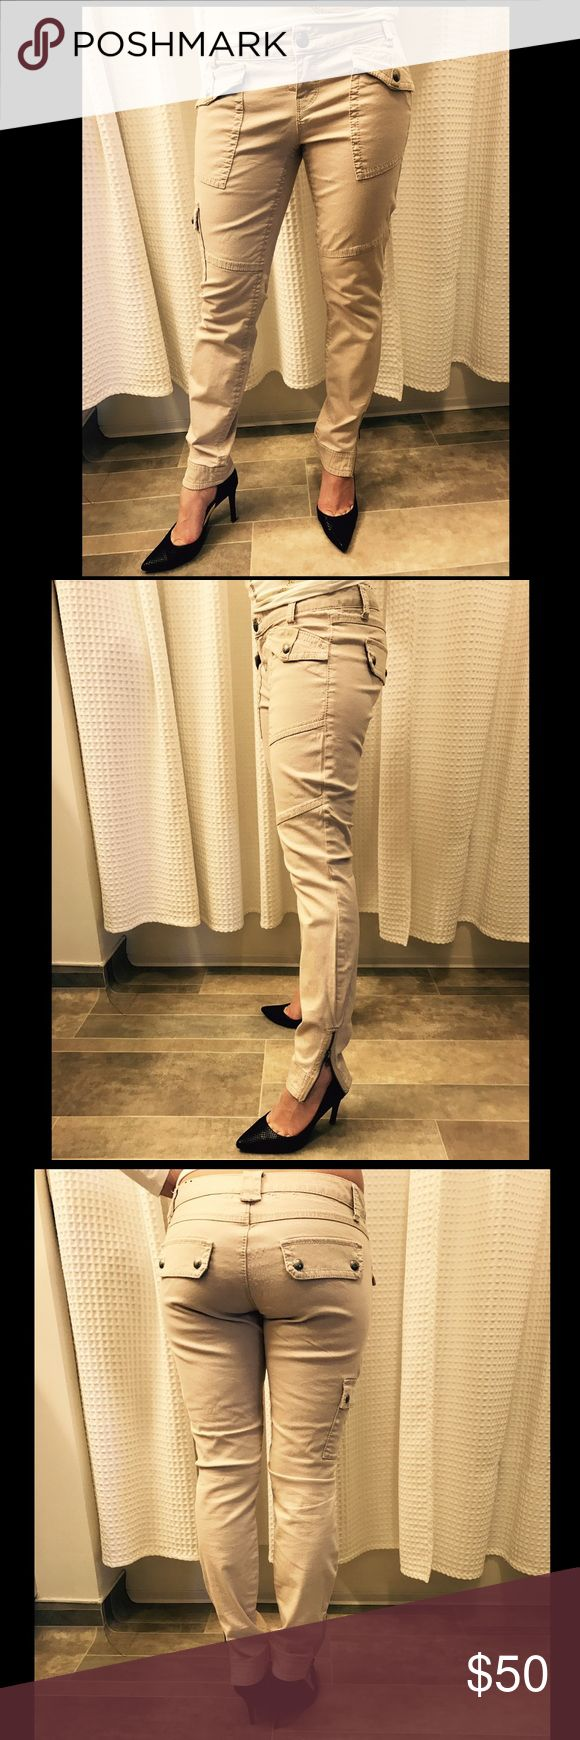 """Additional Photos! - Modeled - Express Cream Jeans Express - Women's Light Tan/Beige/Cream Colored Skinny Jeans/Leggings """"Jeggings"""" Size: 4 (S). Good condition; Some light wear on these jeans but, no significant flaws. Express Pants Skinny"""